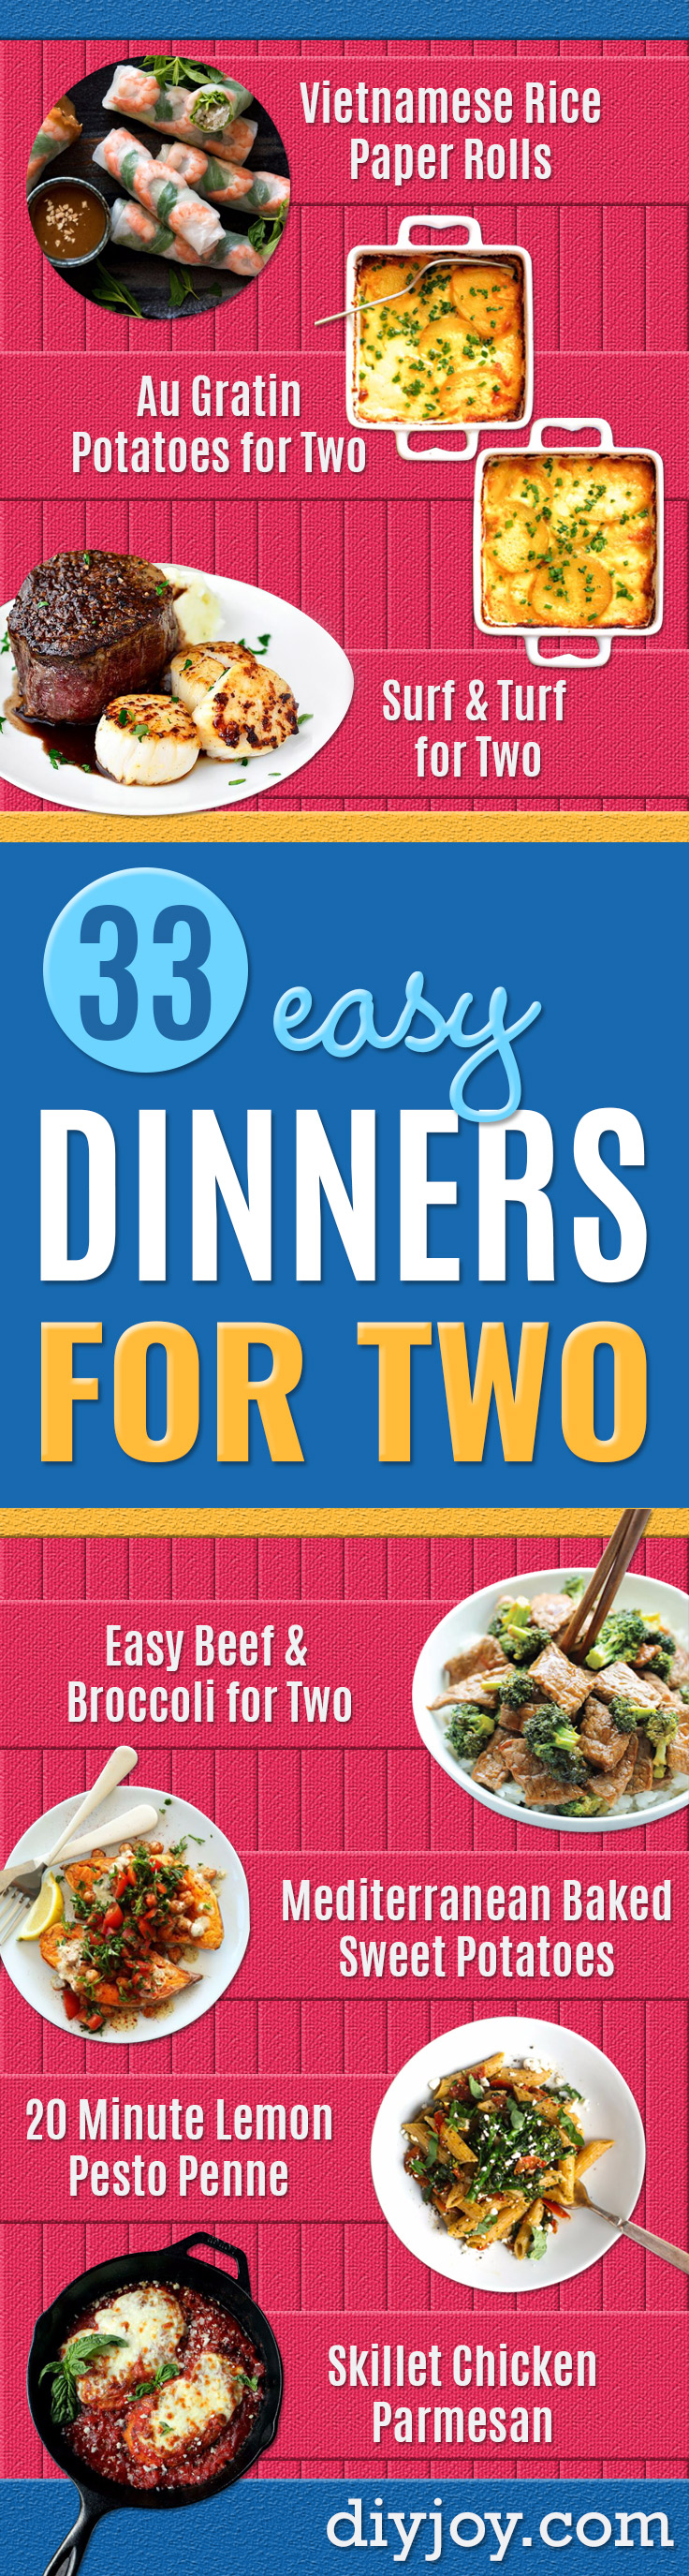 Easy Dinner Ideas For Two